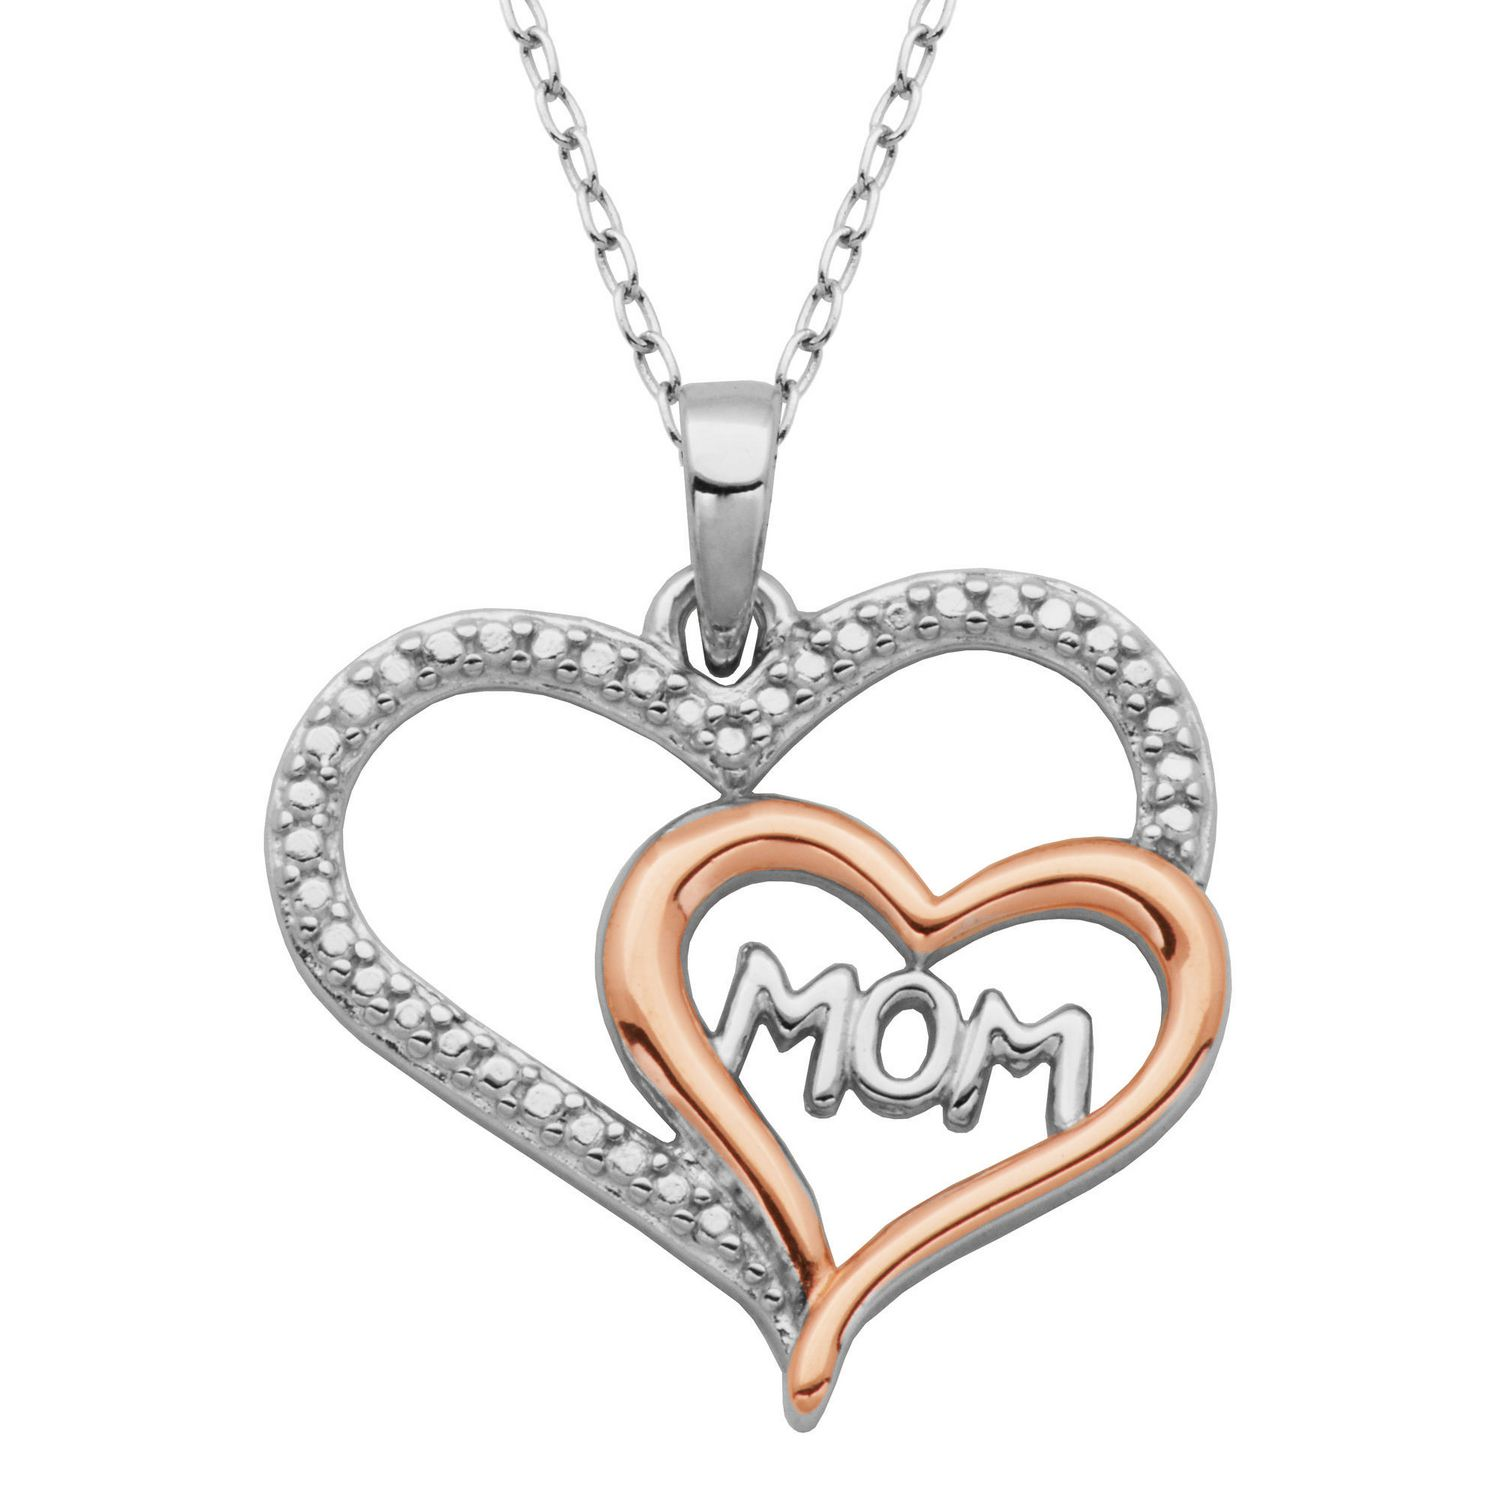 girls necklace heart wearing gift sterling party vintage date chain product pendant wholesale plated silver crystal wedding love women double elegant